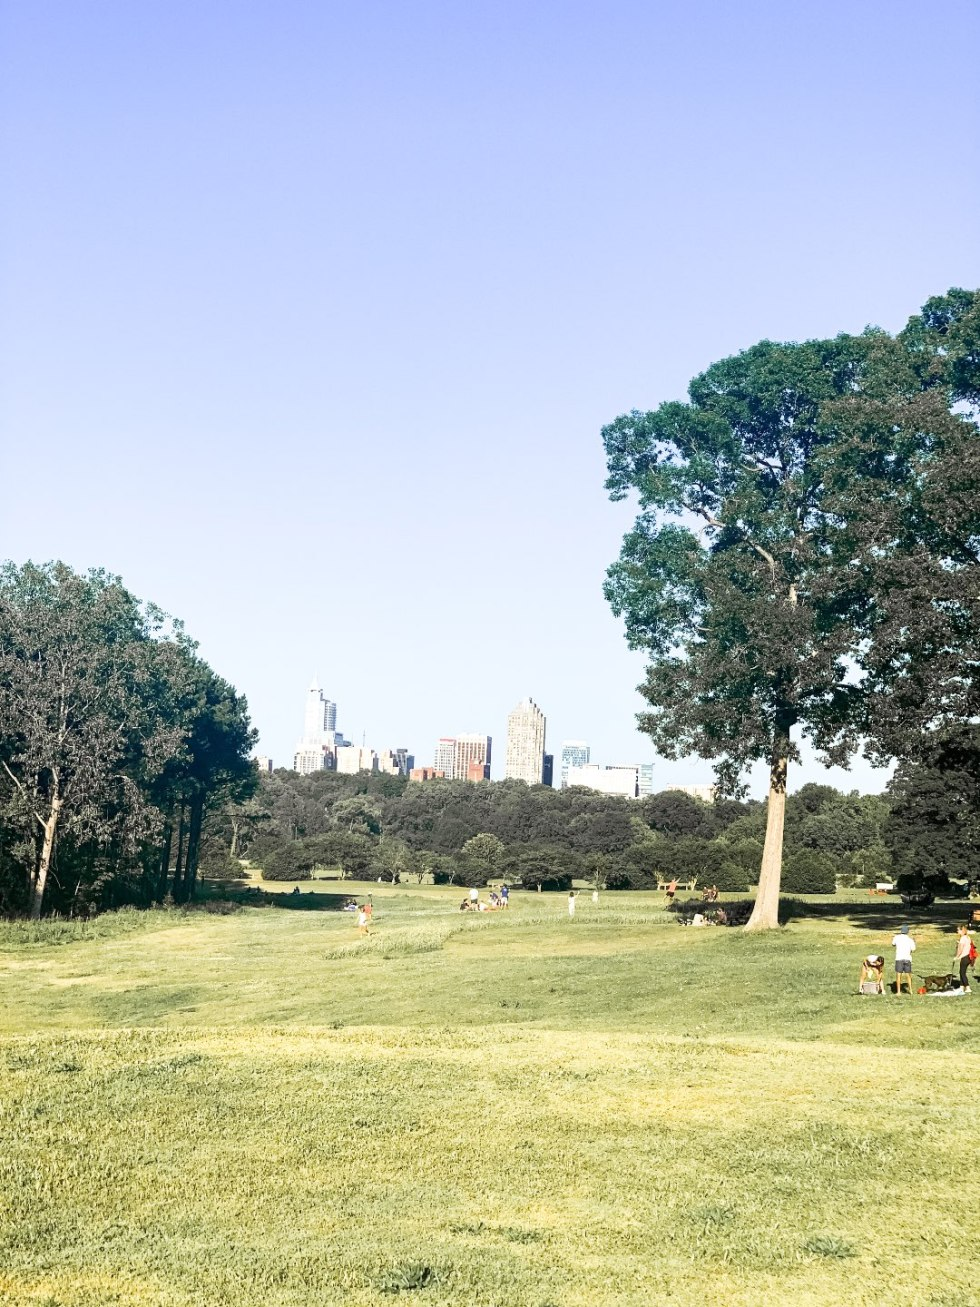 The Top 3 Places to Have a Picnic in Raleigh - I'm Fixin' To - @mbg0112 | Picnic in Raleigh by popular North Carolina blog, I'm Fixin' To: image of Dorothea Dix park.